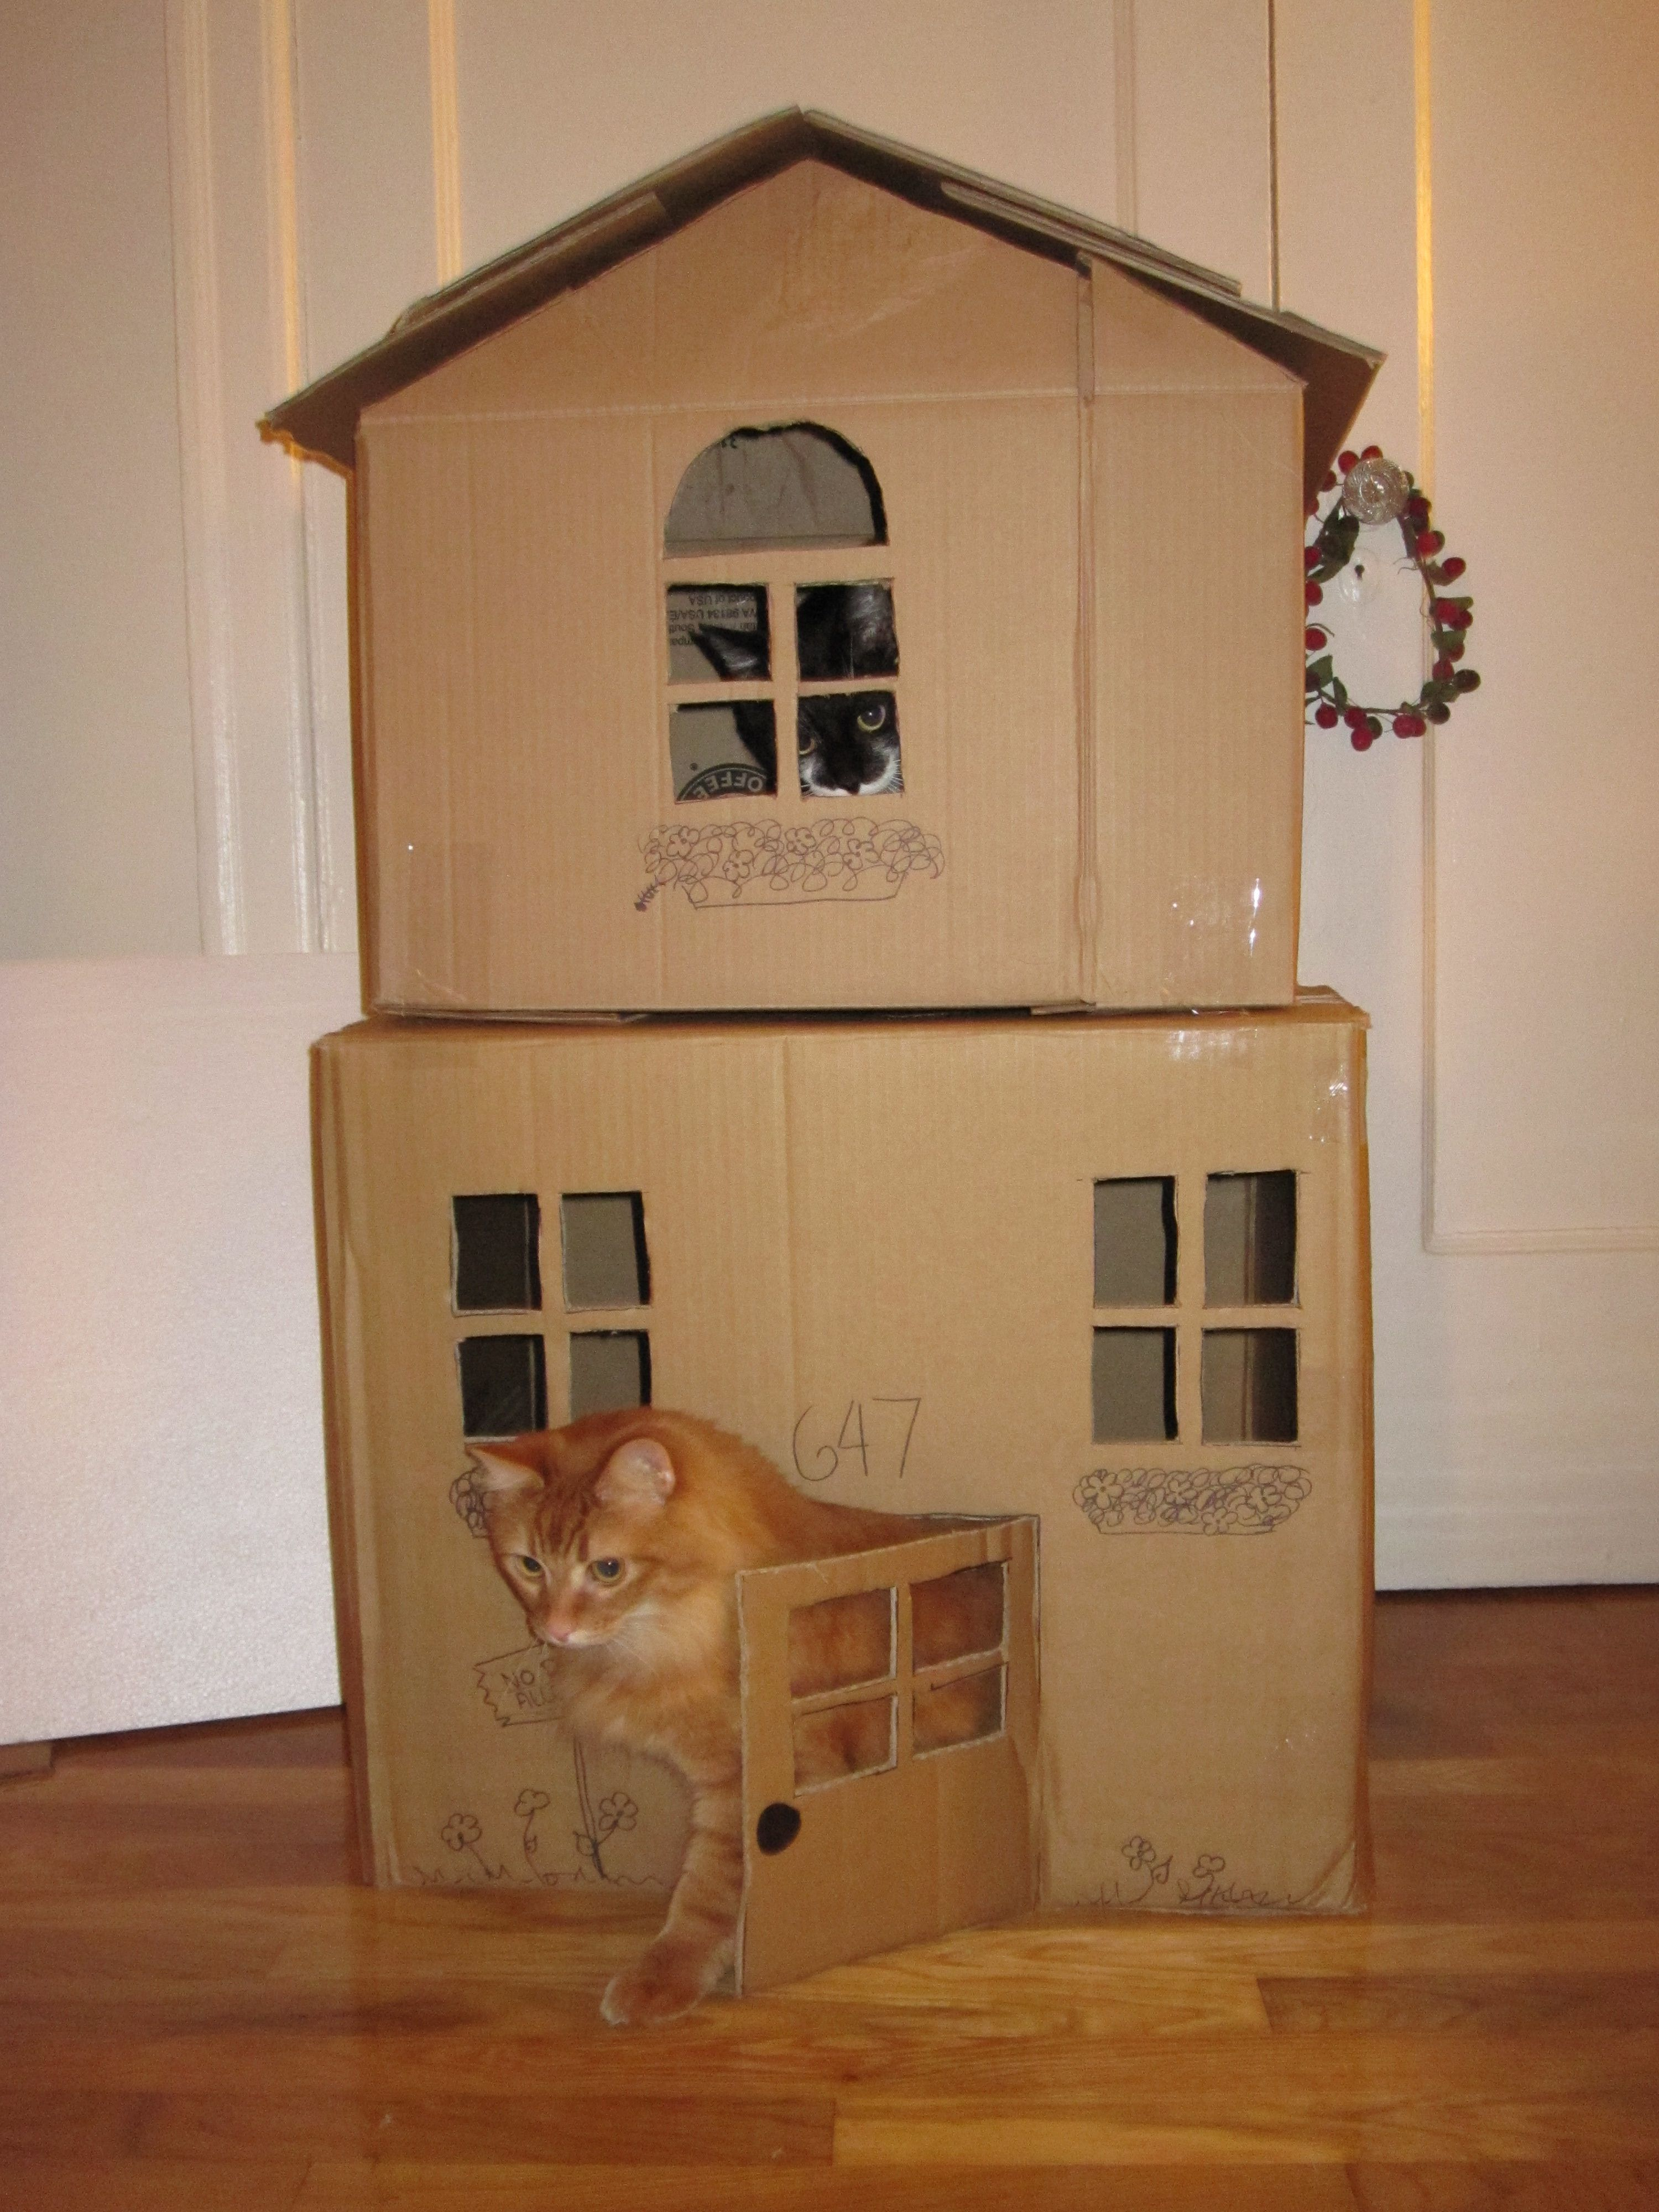 Cardboard House For Cats 2 Story Cat House I Made From Cardboard Boxes Pets Pinterest